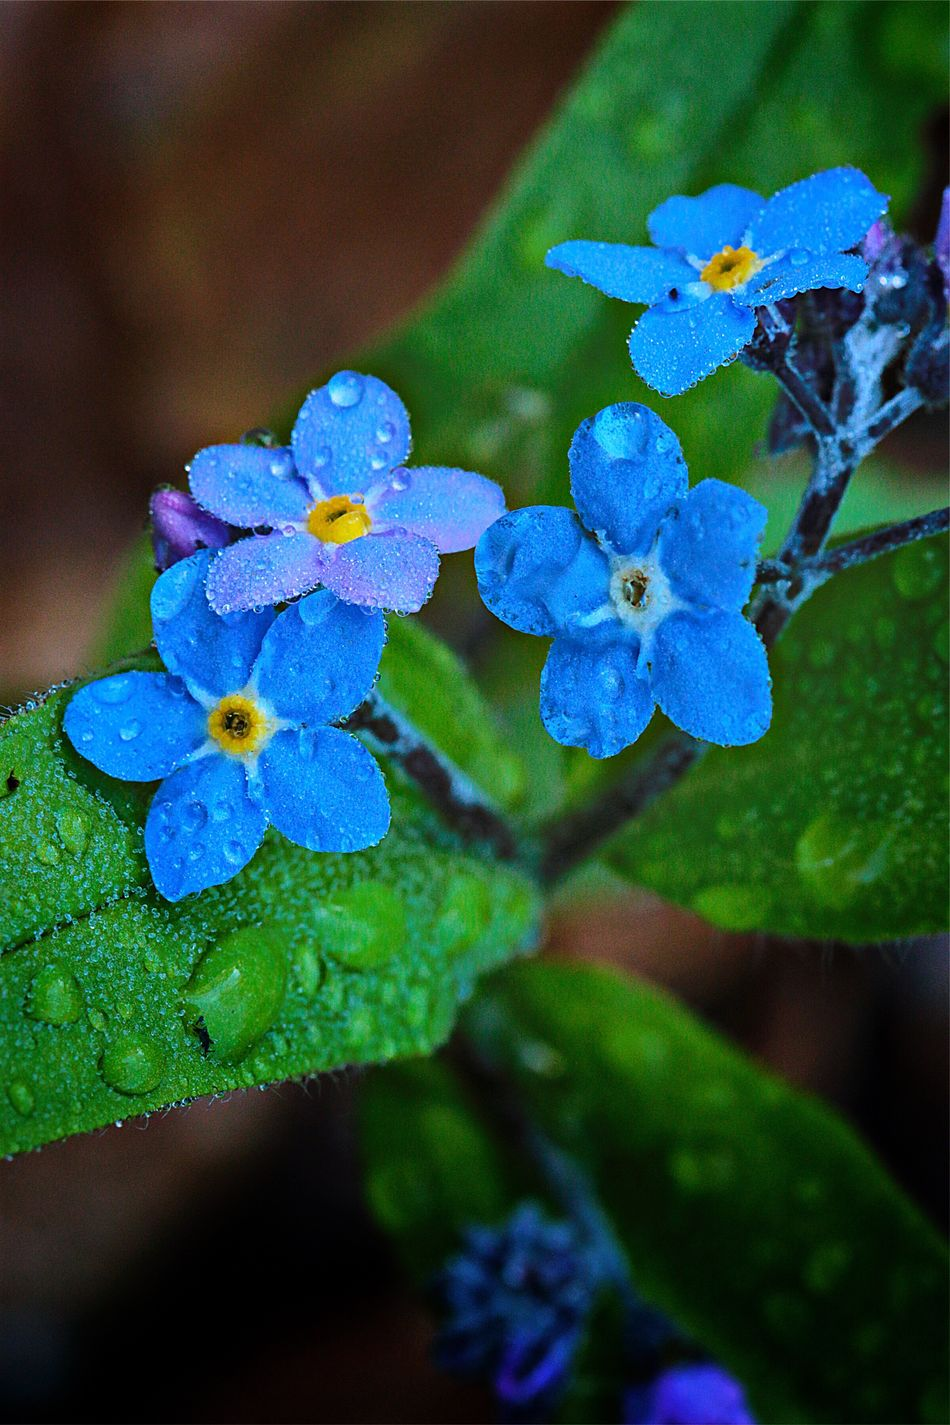 Flower Beauty In Nature Leaf Nature Growth Fragility Plant Close-up Green Color No People Blue Day Purple Outdoors Freshness Focus On Foreground Flower Head Water Forget Me Not Flowers